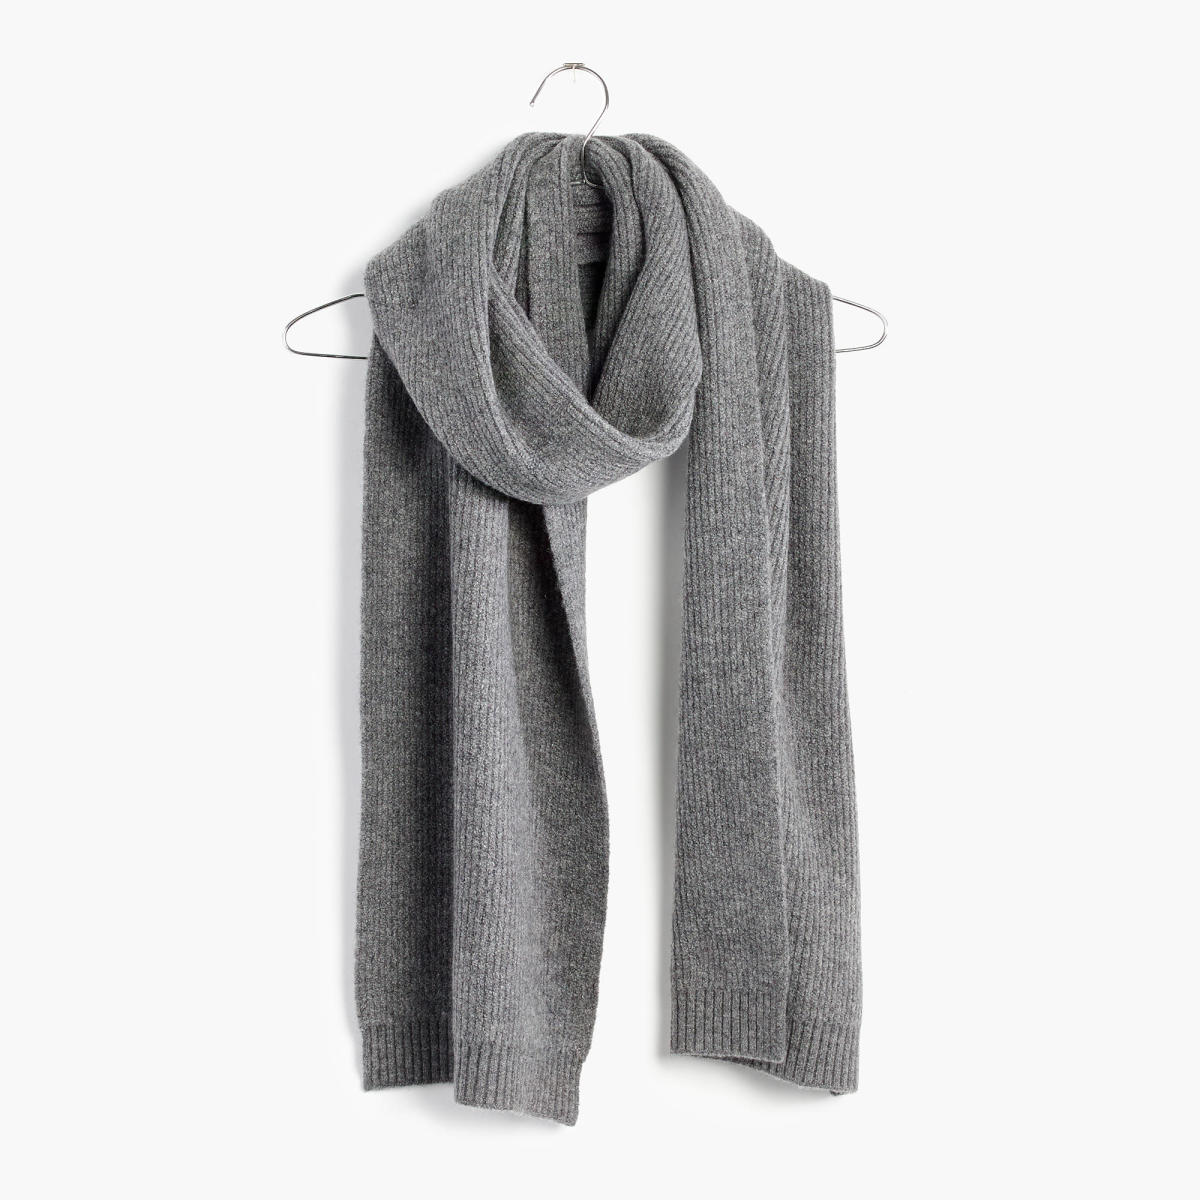 Madewell ribbed scarf, $38.15 with code FORYOU, available at Madewell.